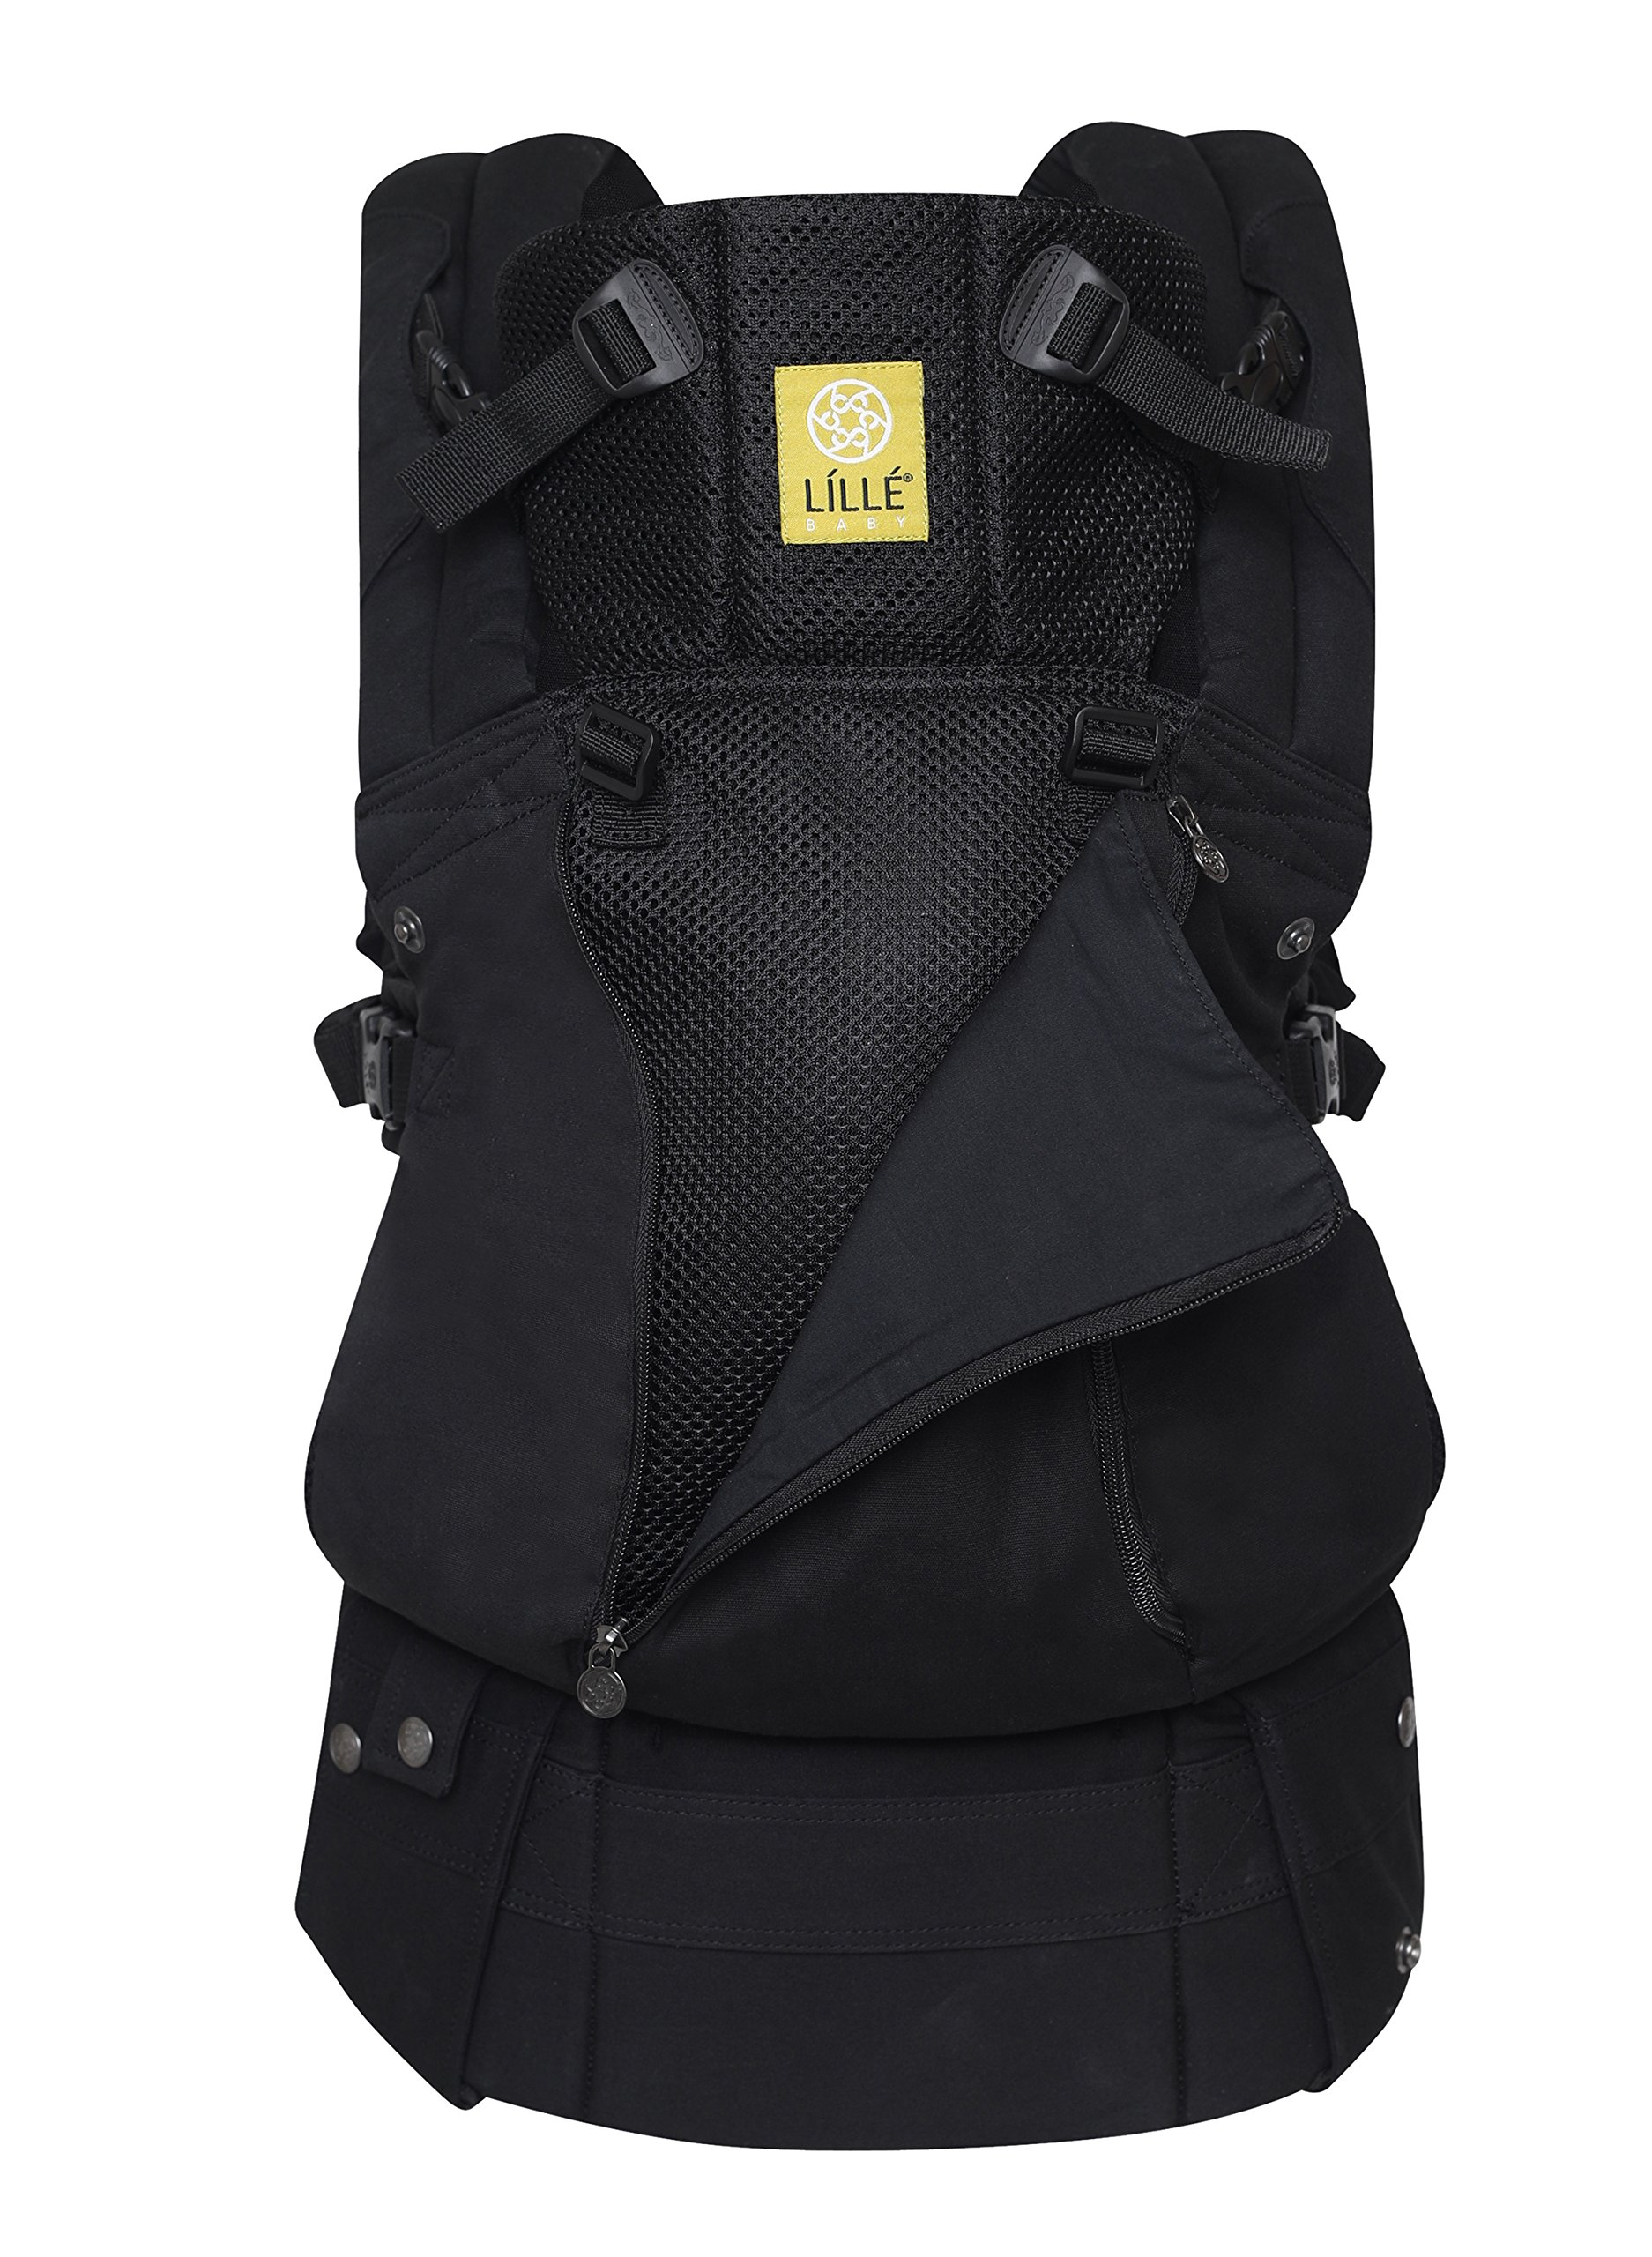 LÍLLÉbaby  Complete All Seasons 6-in-1 Baby Carrier, Black Lillebaby With a temperature regulating breathable panel that unzips to encourage airflow in warm conditions and 6 carrying positions - Foetal, infant inward, outward, toddler inward, hip, back - The only carrier you'll ever need! Suitable from 3.2- 20kg (birth to approx. 4 years old), providing extended comfortable use for parent and child with no additional infant support required for new-borns - the ergonomic adjustable seat is acknowledged as 'hip-healthy' by the International Hip Dysplasia Institute Unique spacious head support with elasticated straps - soothes infants with gentle lulling motion and provides excellent support as children grow 1